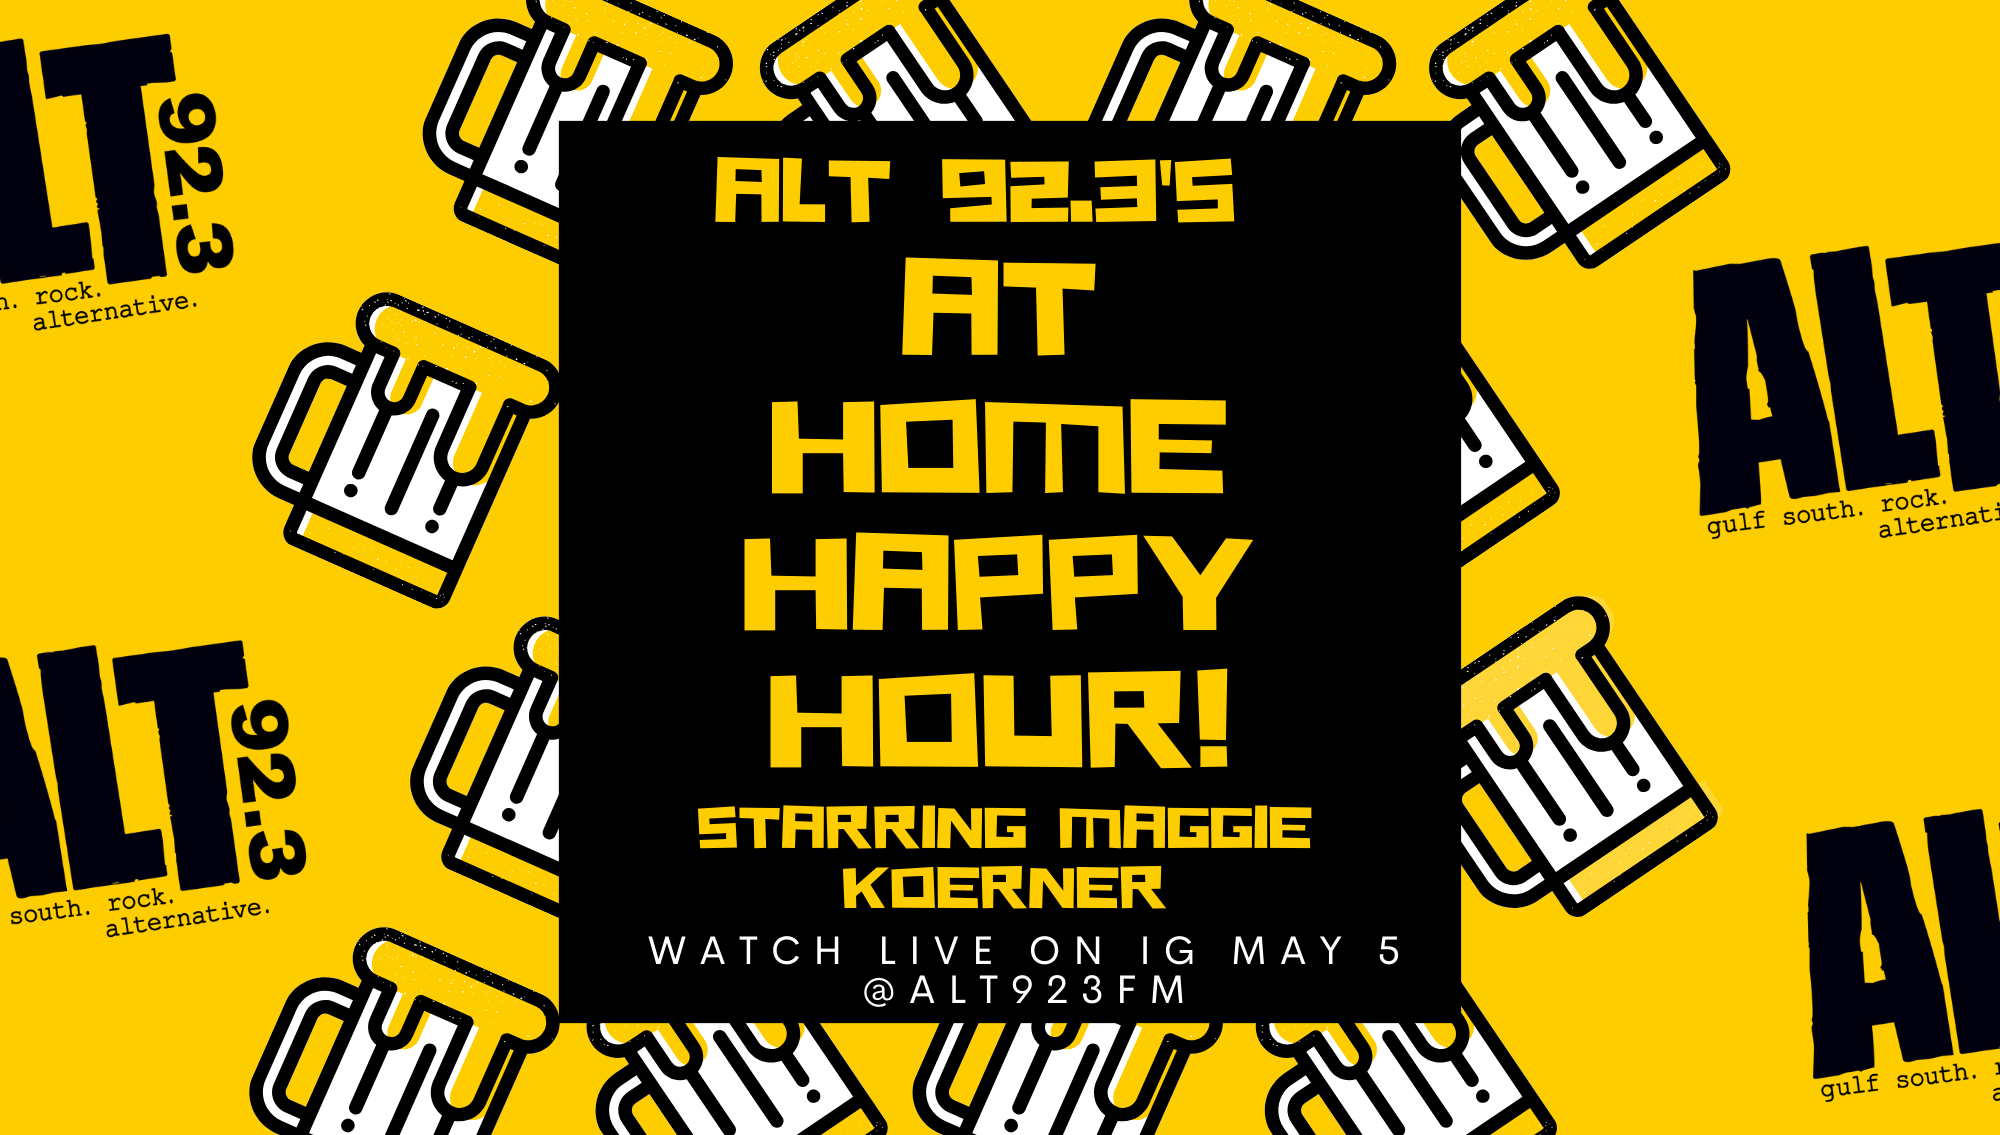 ALT Home Happy Hour with Maggie Koerner!